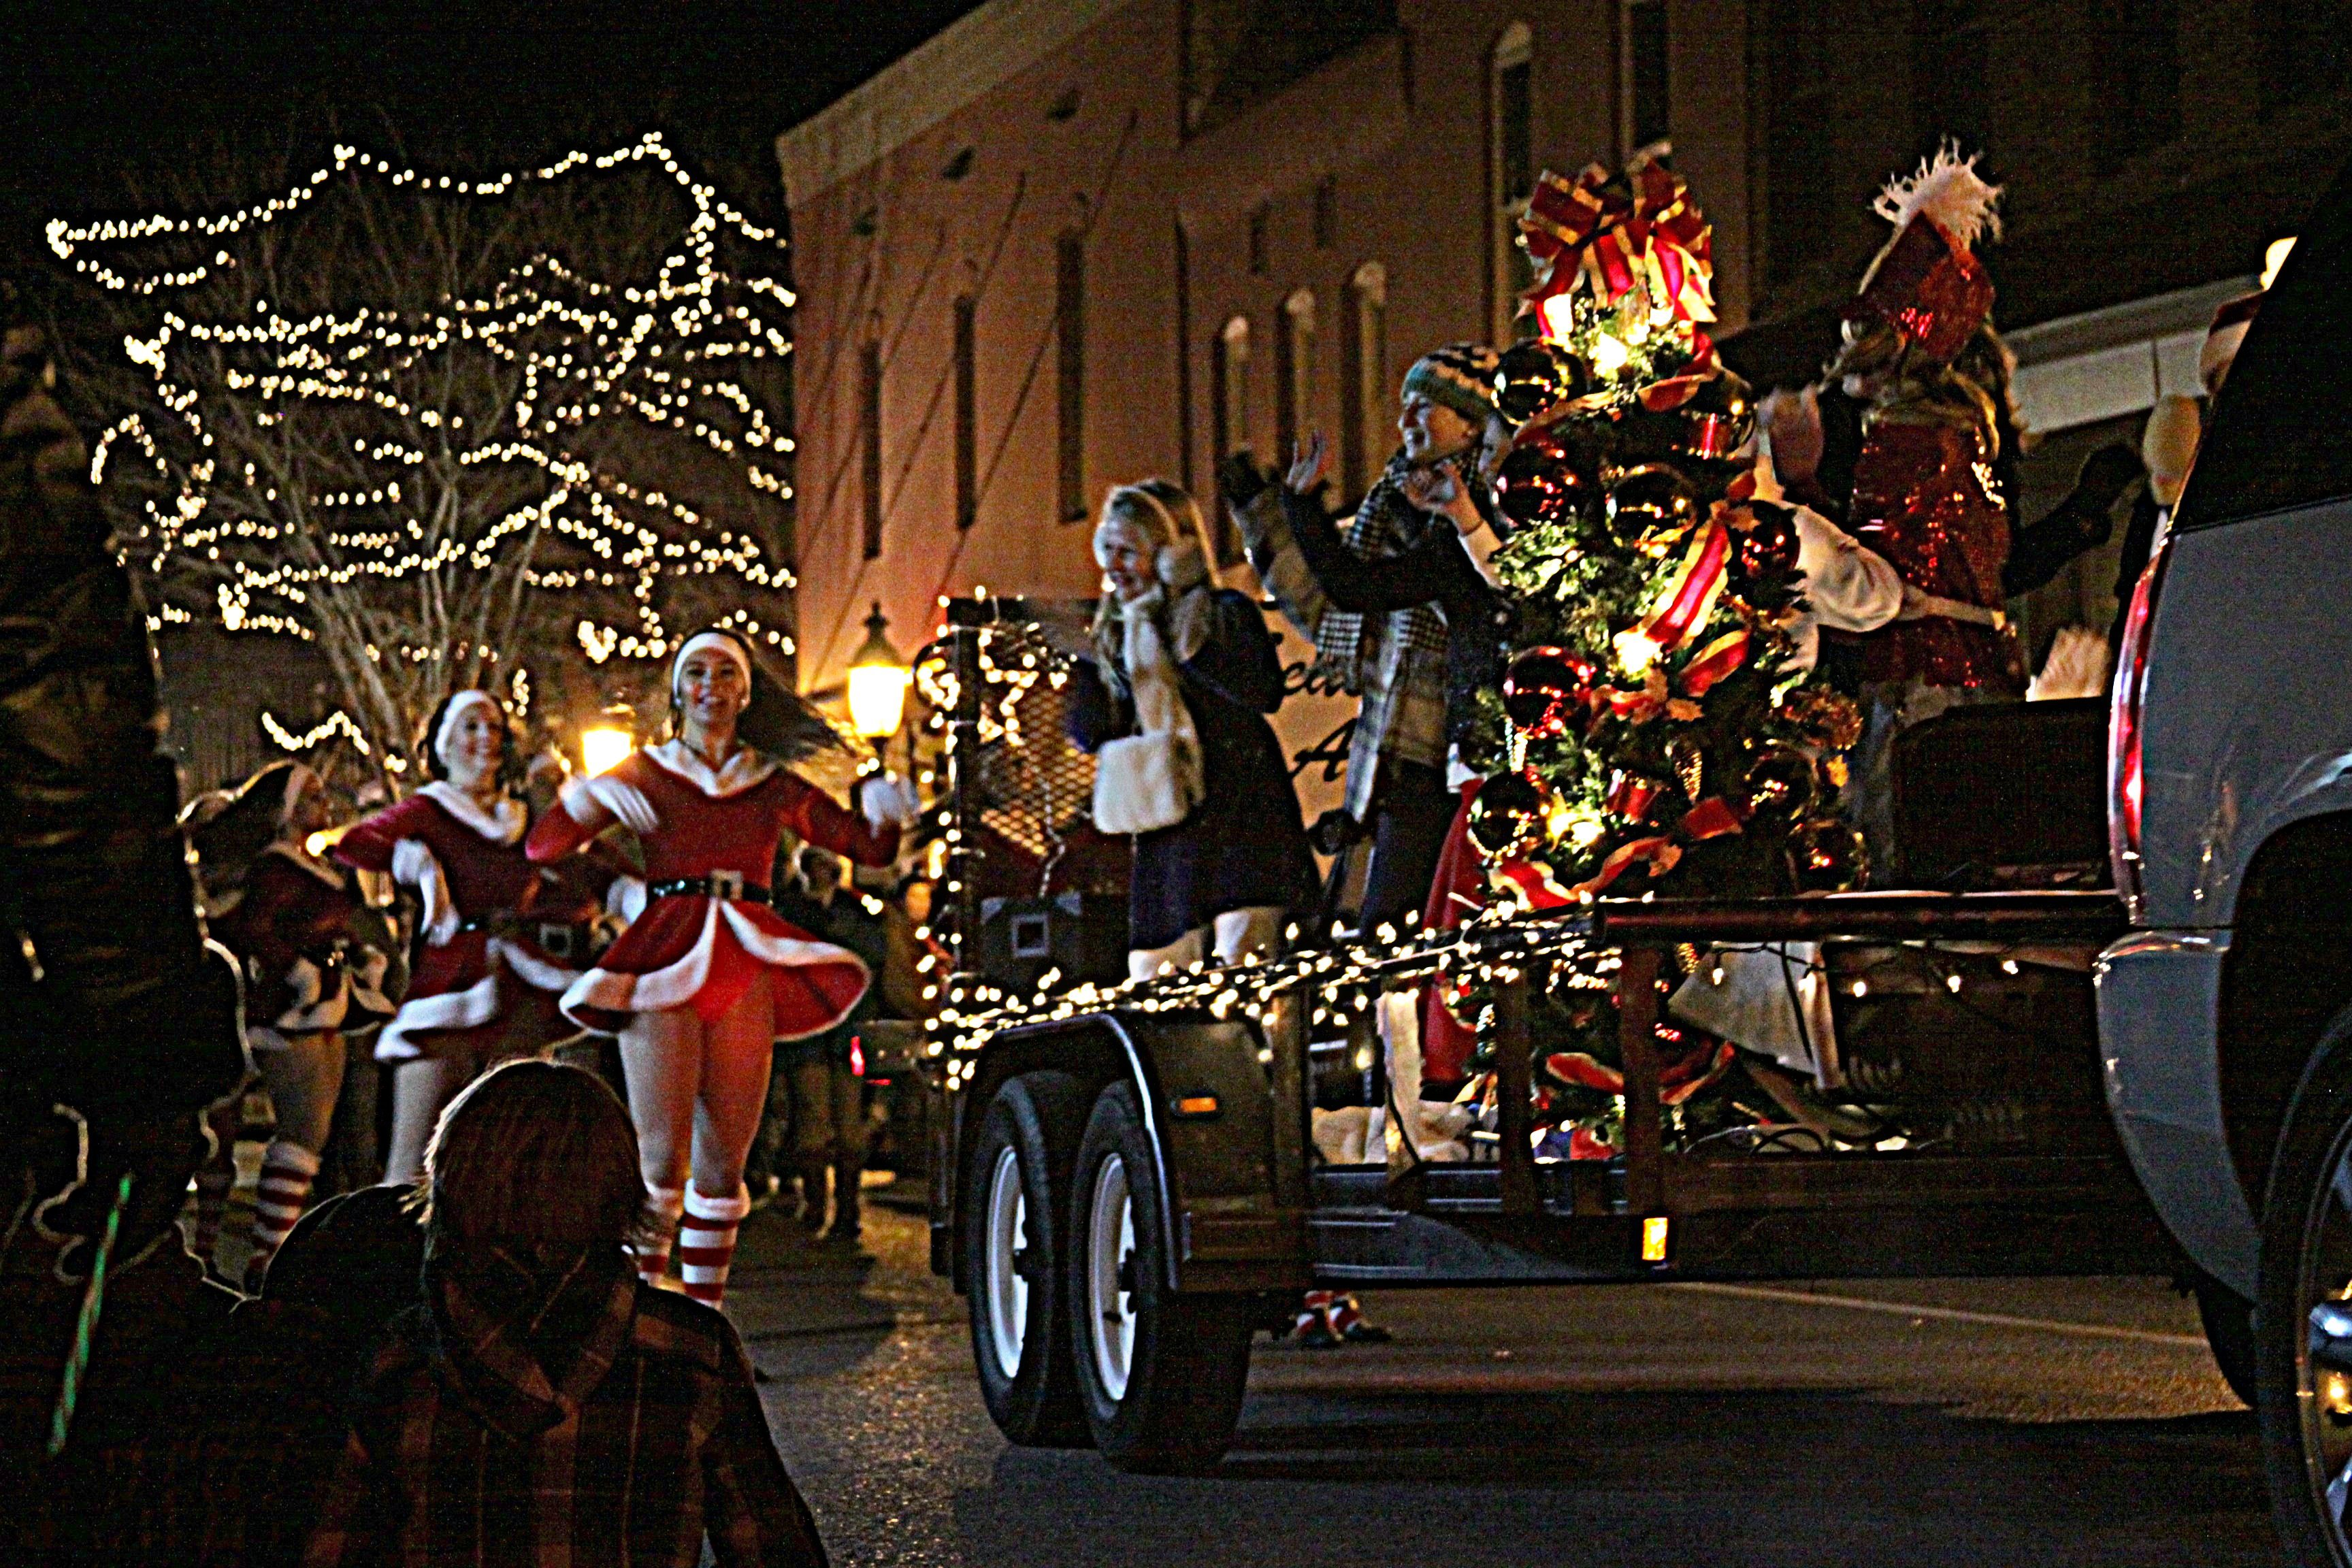 Berlin Md Hosts Annual Christmas Parade Tonight A